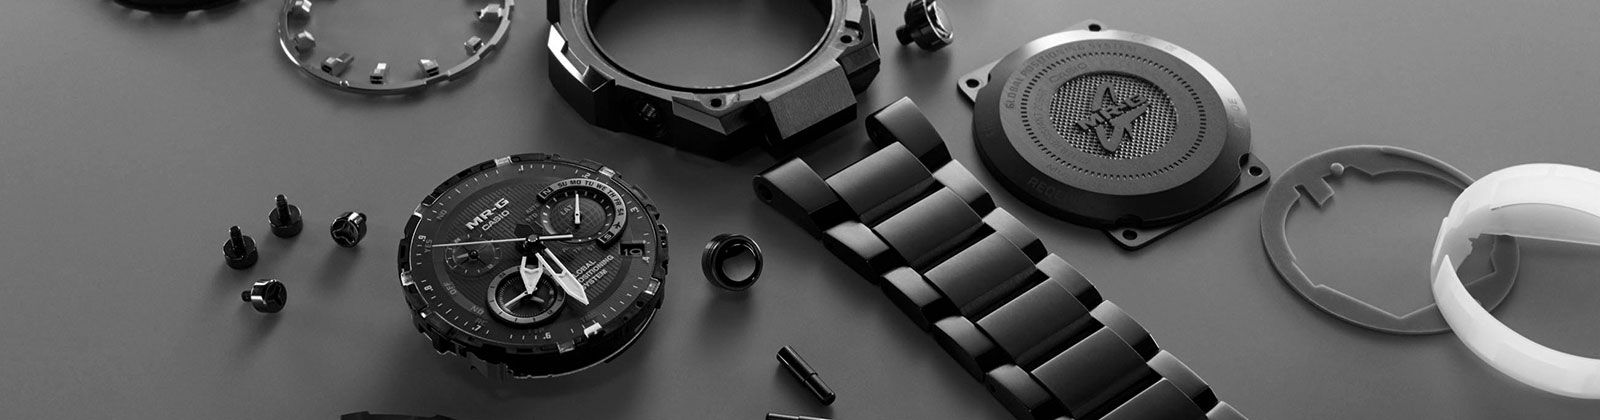 G Shock Service Support